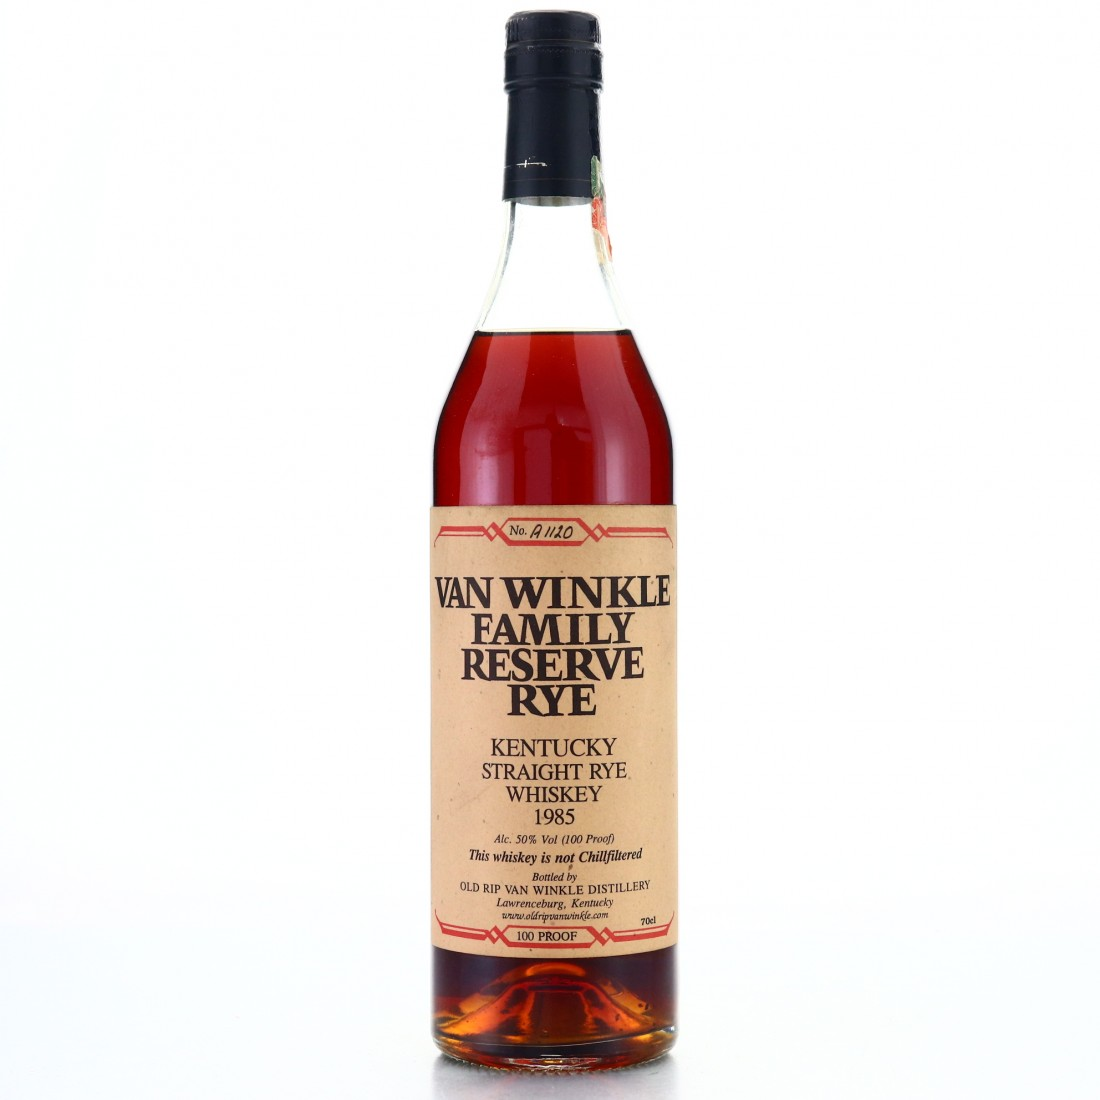 Van Winkle 1985 Family Reserve Rye / Un-Chillfiltered European Exclusive